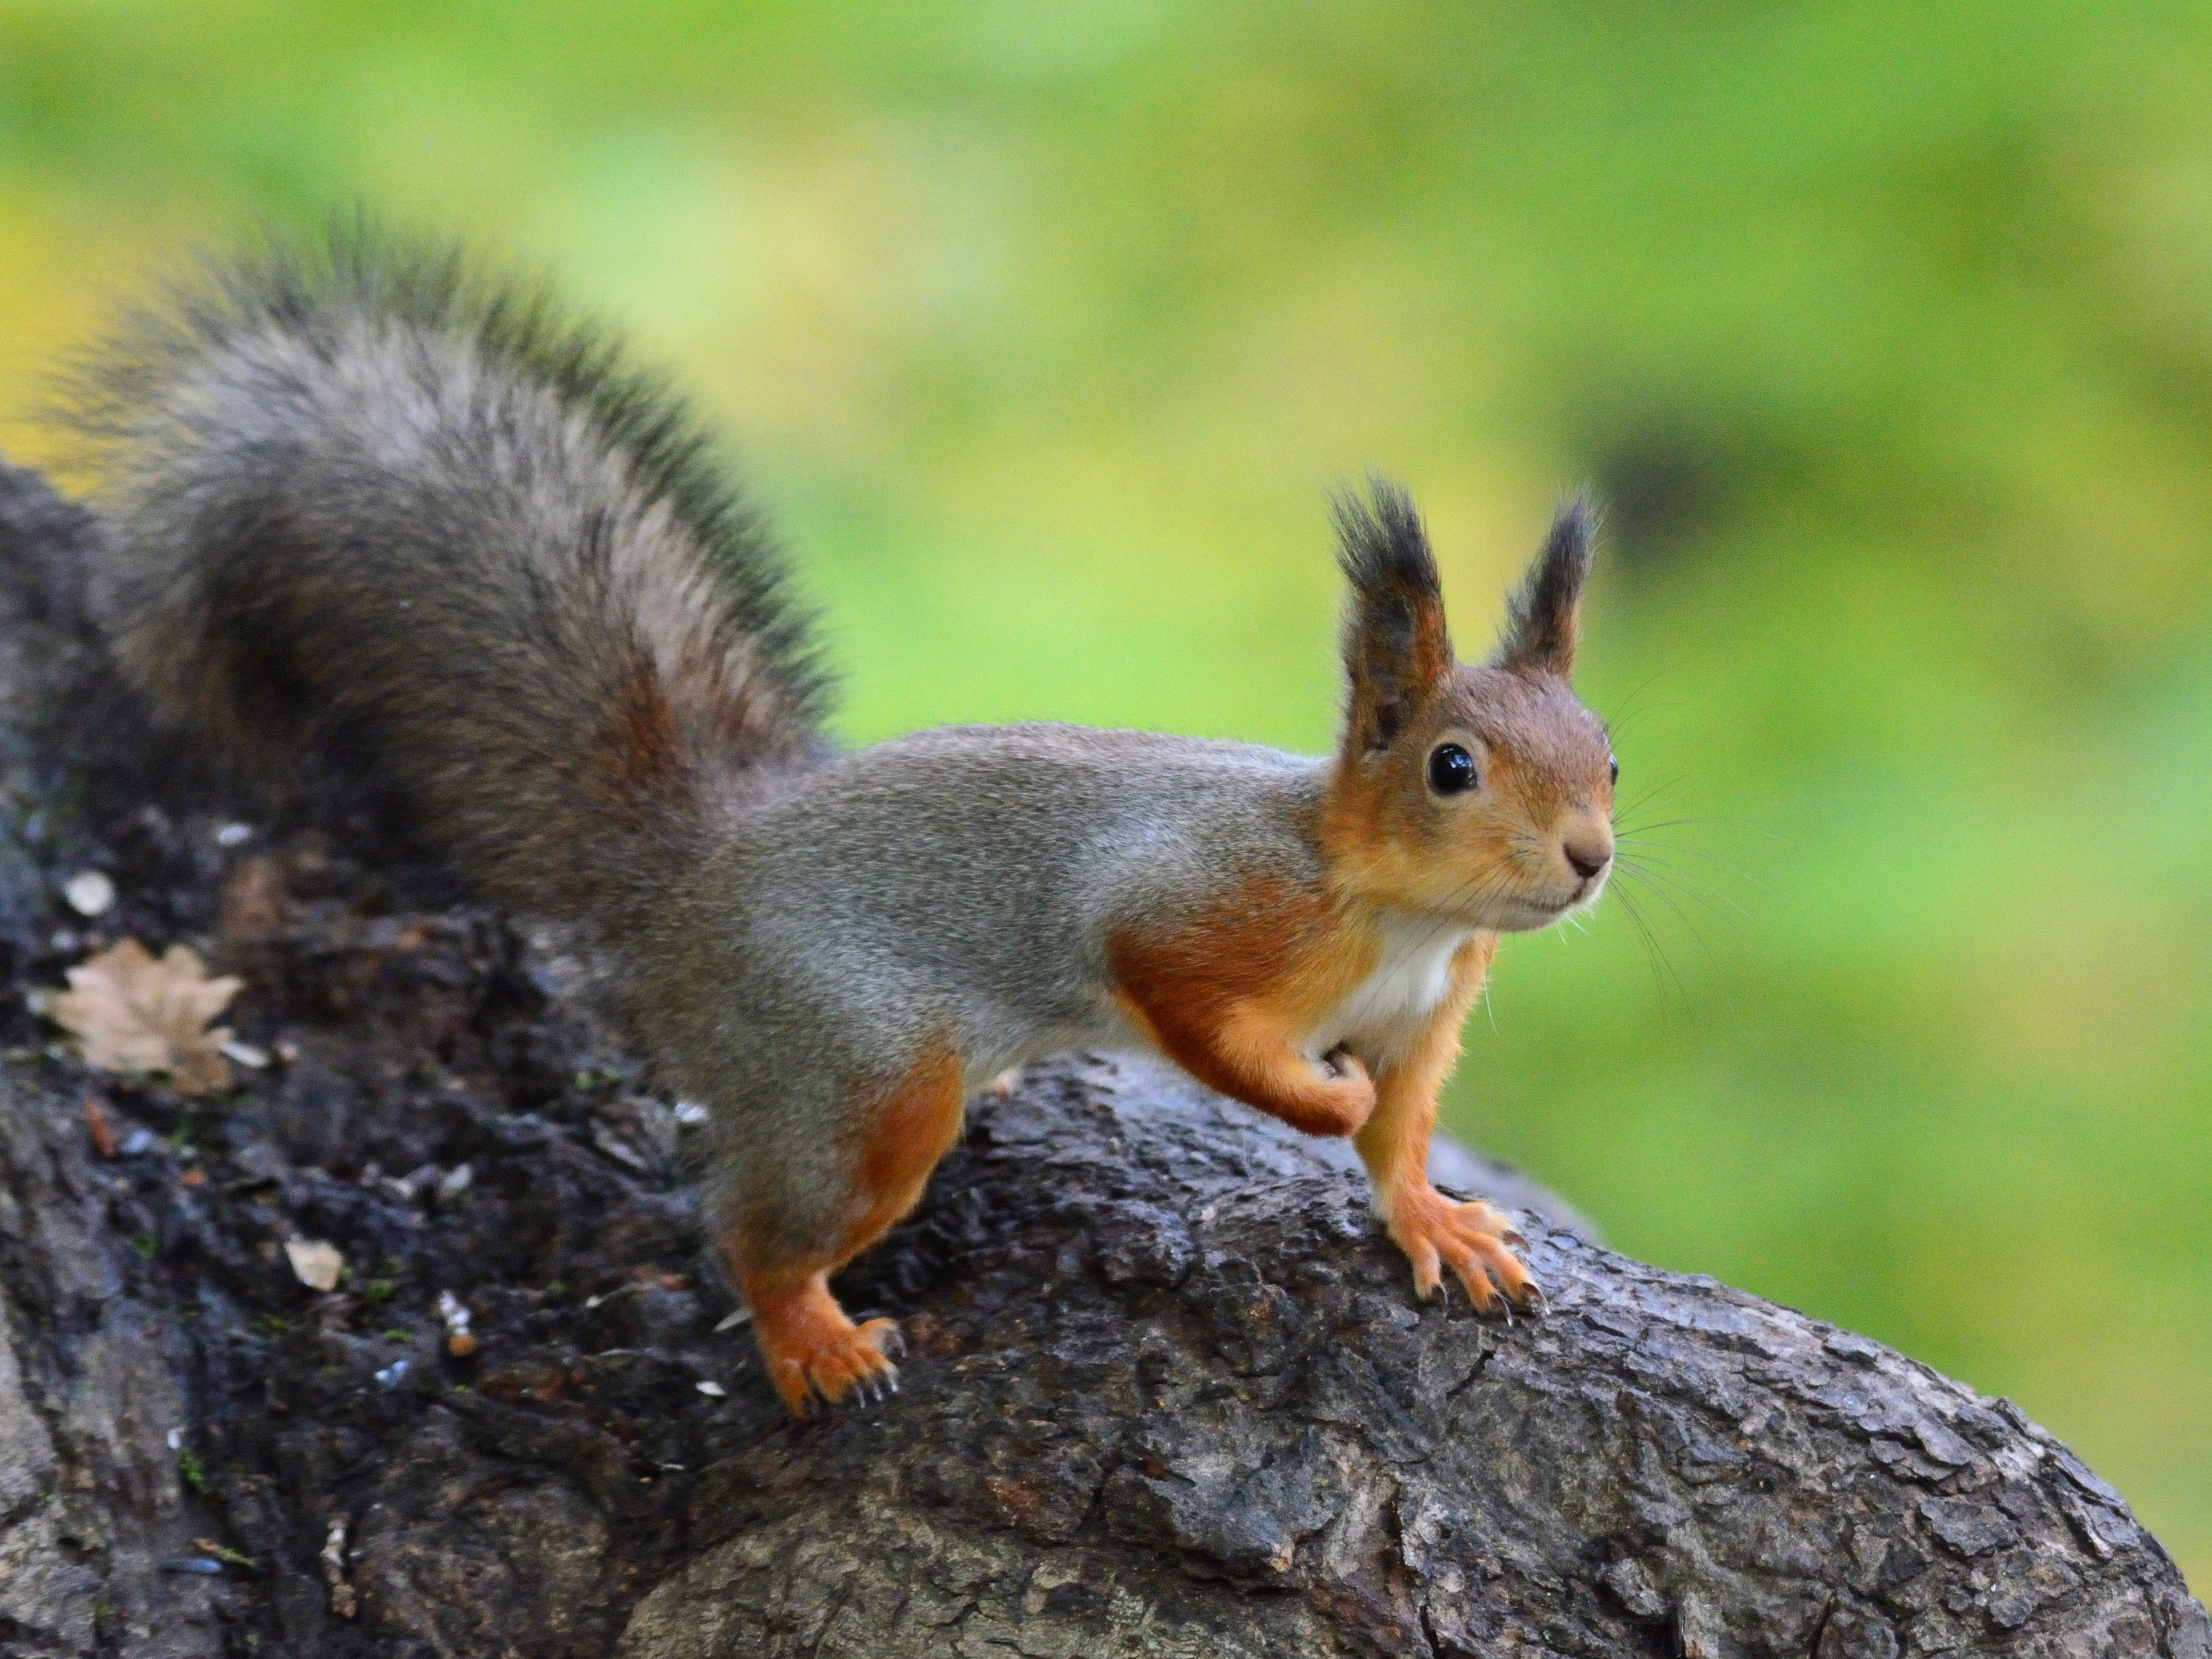 84404 download wallpaper Animals, Squirrel, Animal, Funny, Wildlife screensavers and pictures for free